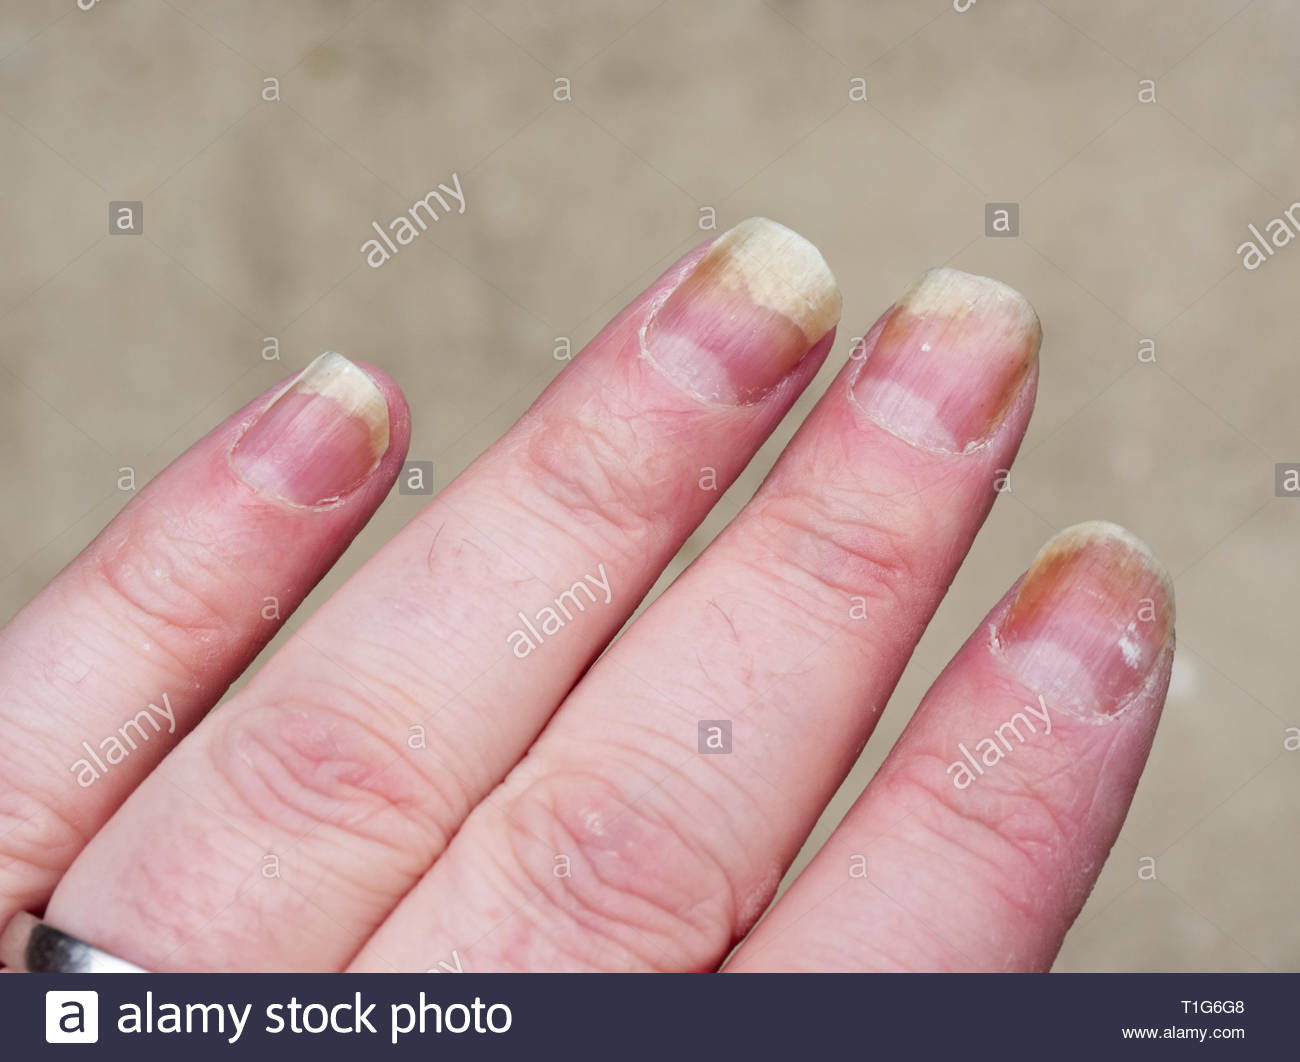 Mans hand showing nails that are badly infected with nail fungus, an unplesant affliction that affects millions of people worldwide - Stock Image